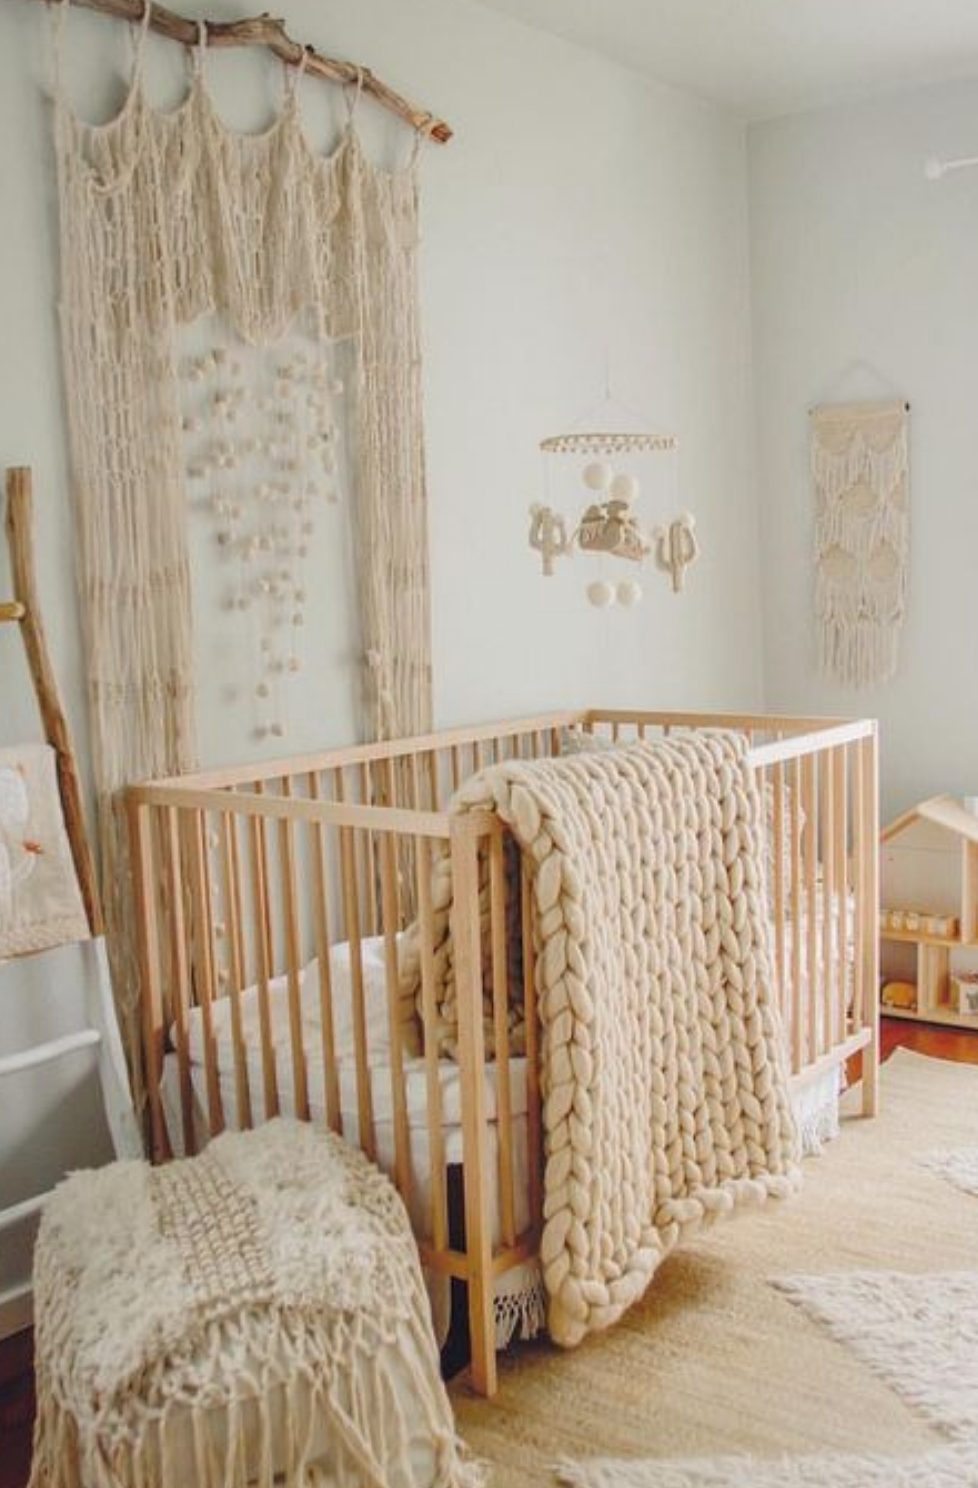 Macrame in the nursery